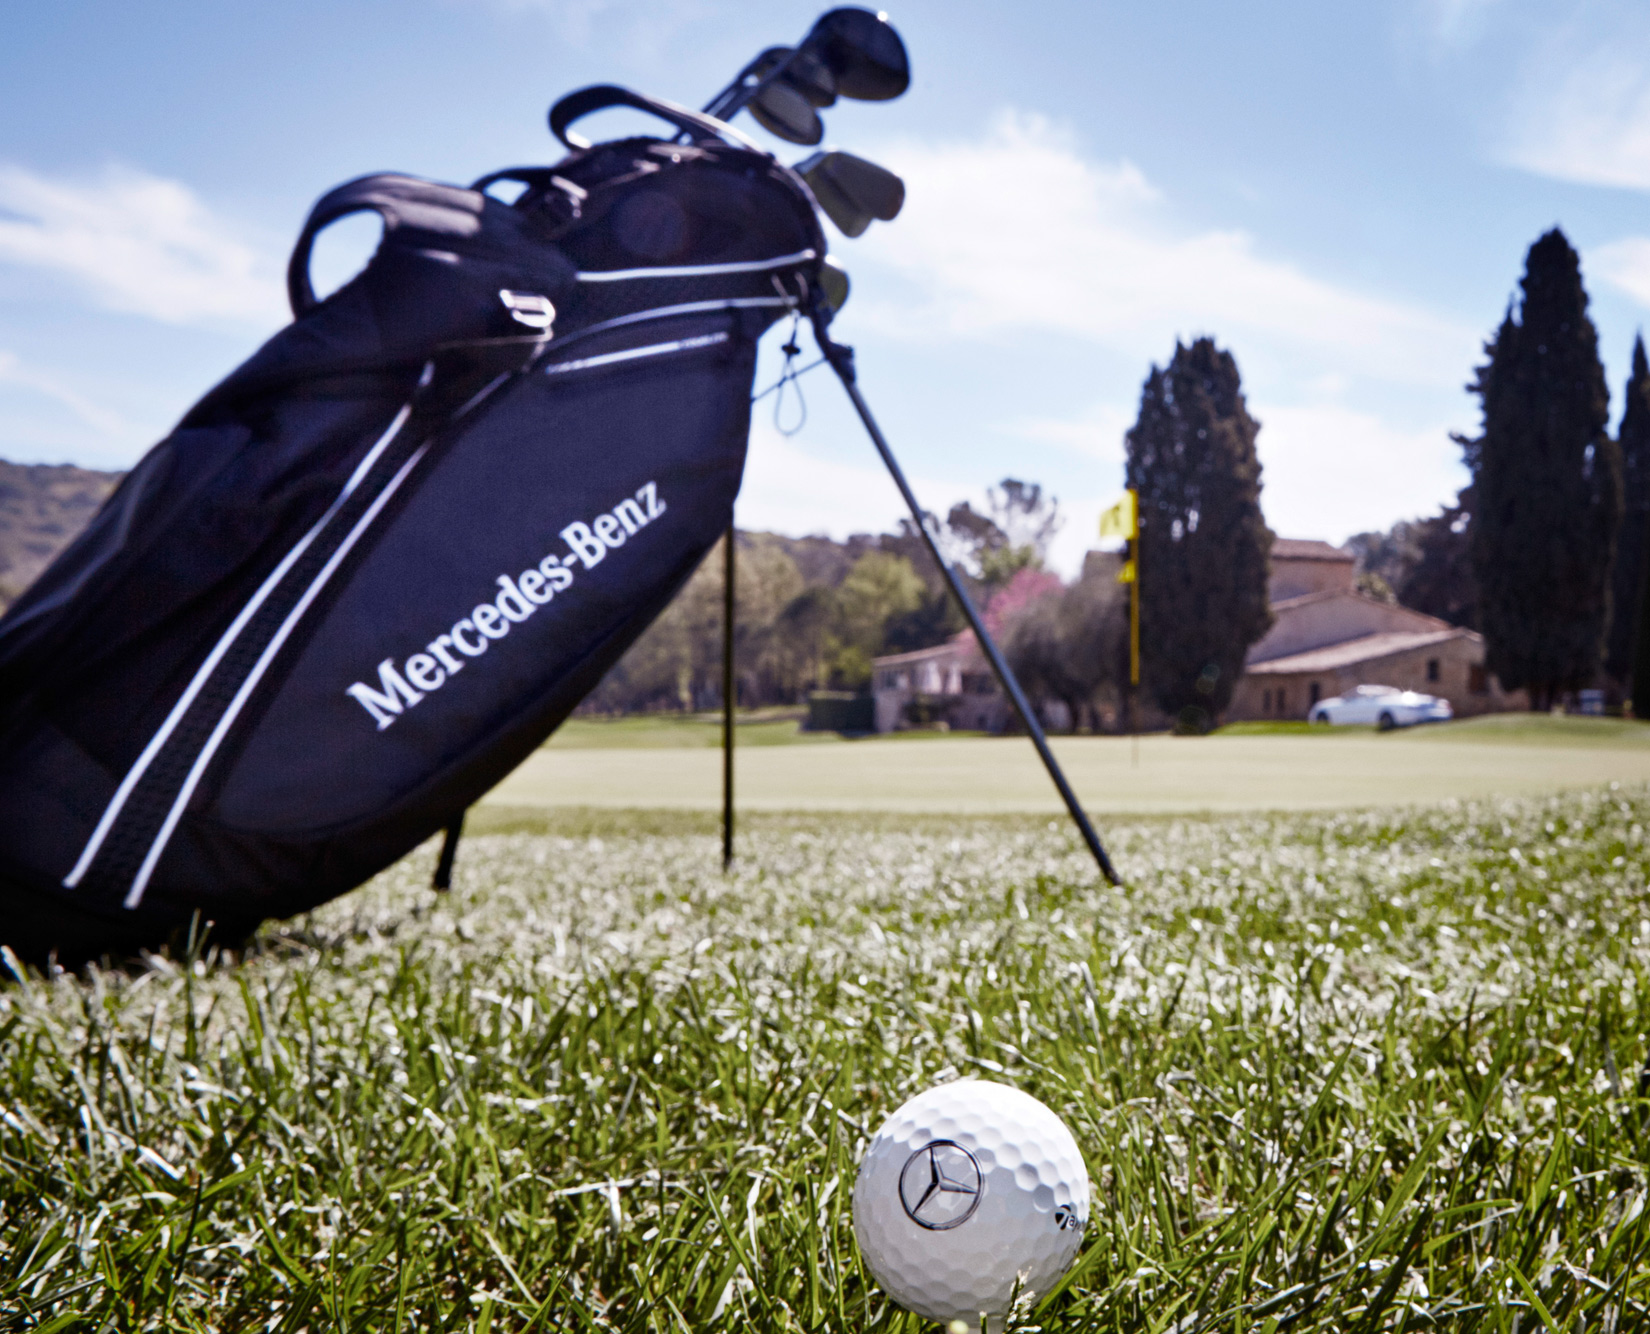 Drive in style with the 2016 mercedes benz golf collection for Mercedes benz golf bag